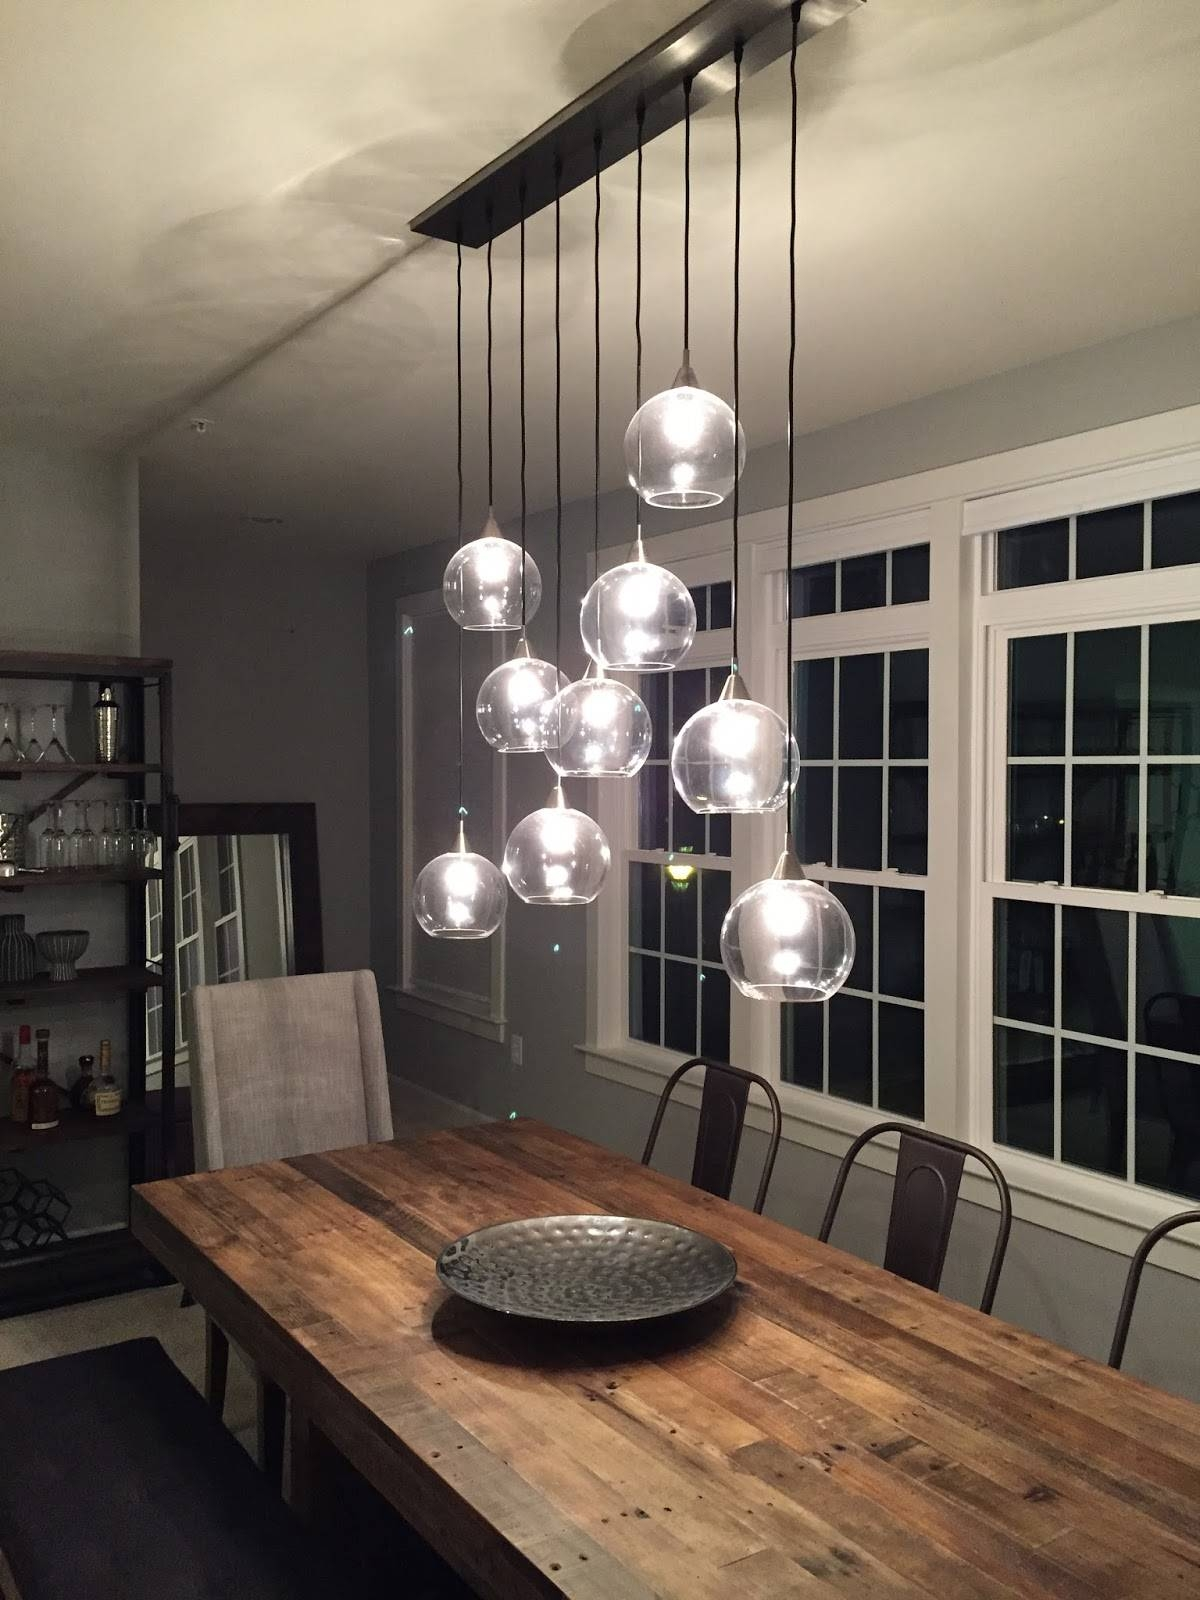 Whats New? Some Progress Finally! | Building Our Nvhomes Andrew within Cb2 Lighting Pendants (Image 15 of 15)